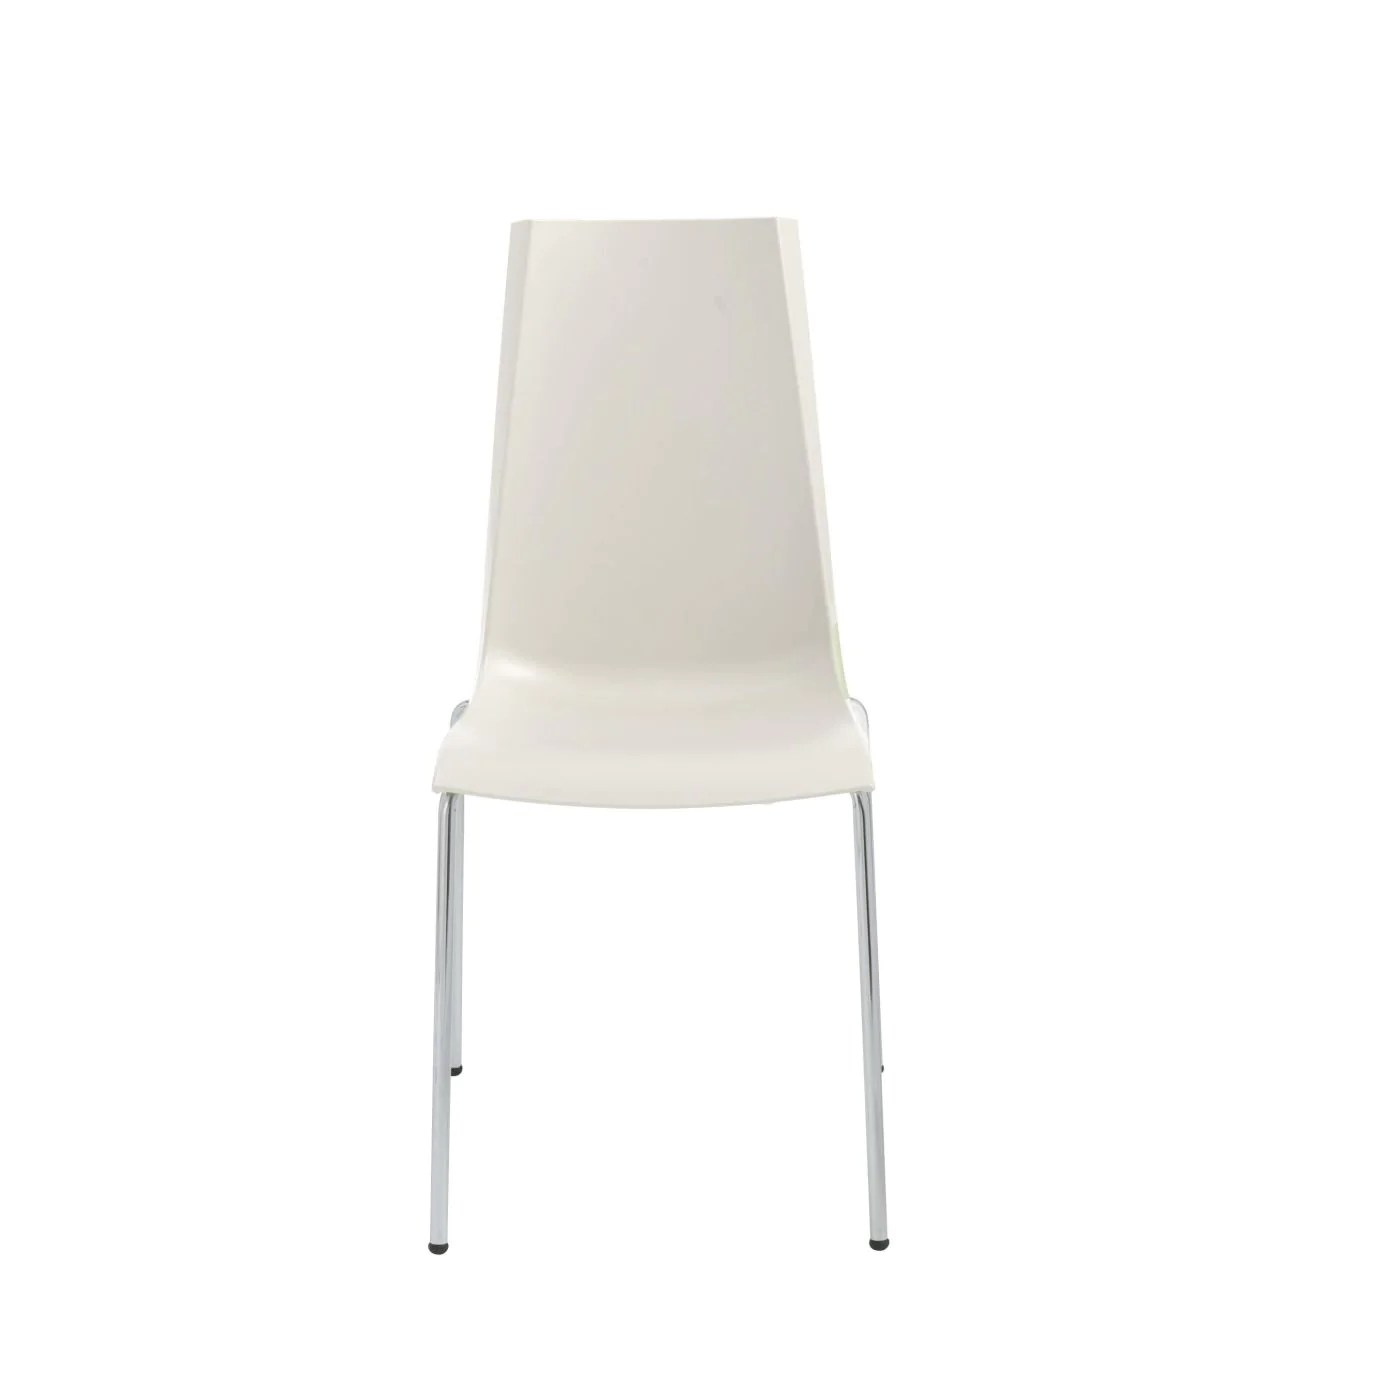 mannequin chair stand conference tables and chairs stacking side in linen with chrome legs